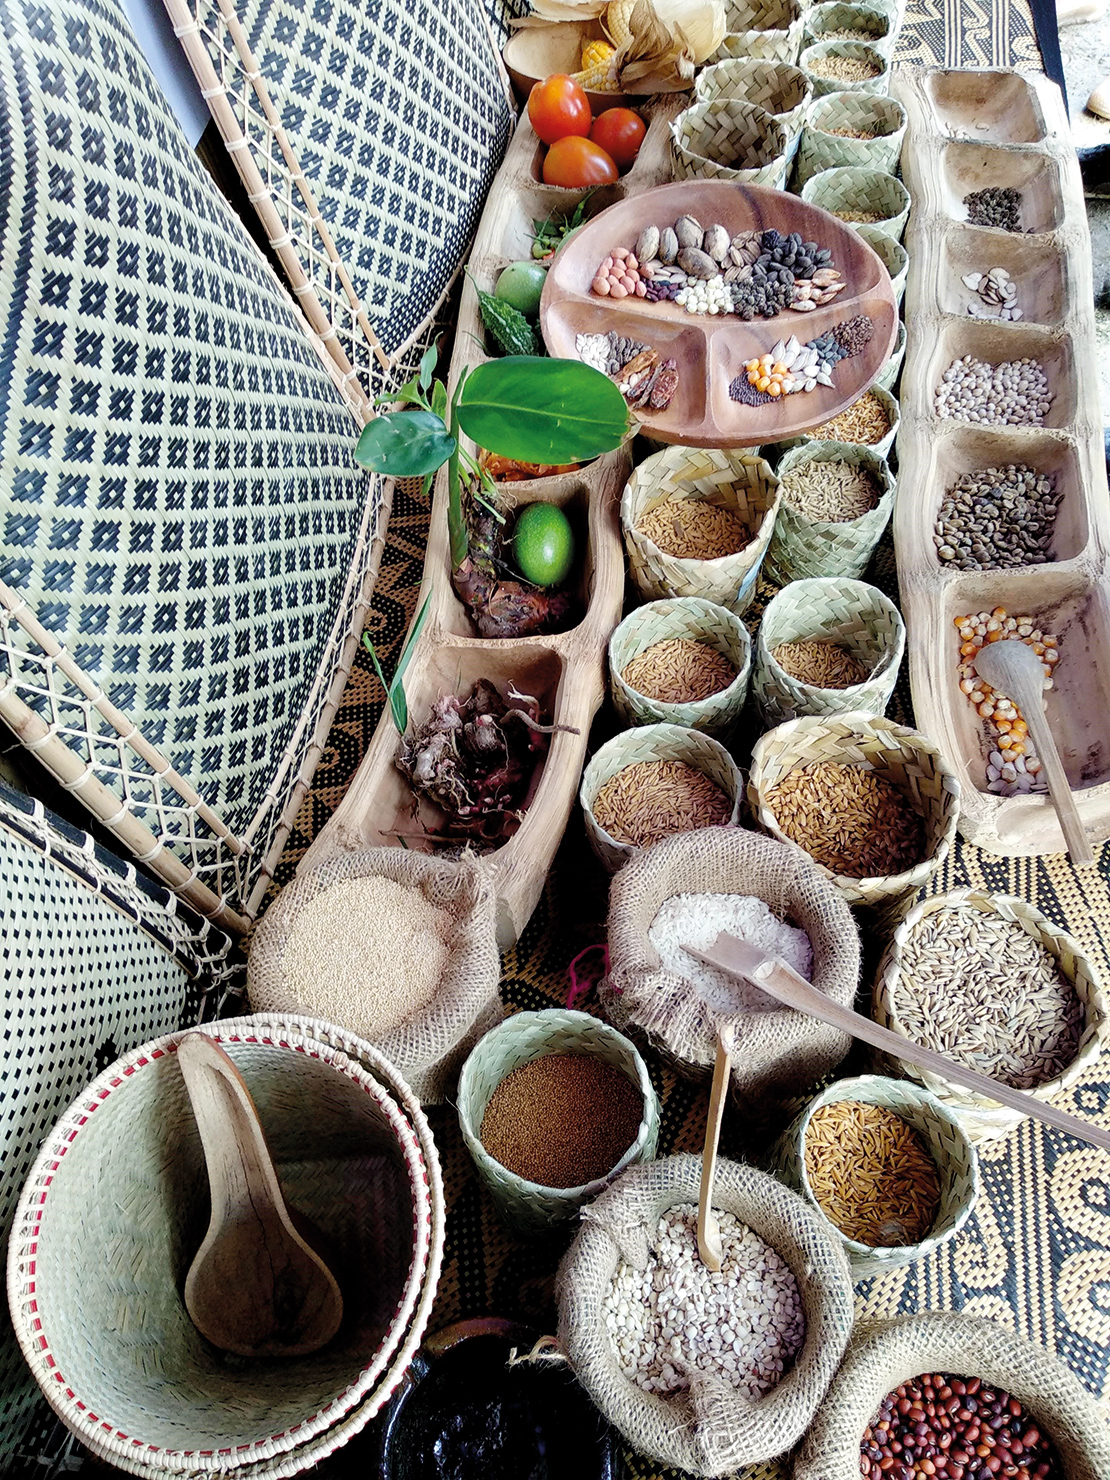 Foods and seeds from the Krayan Highlands. Credit: Ellias Yesaya.